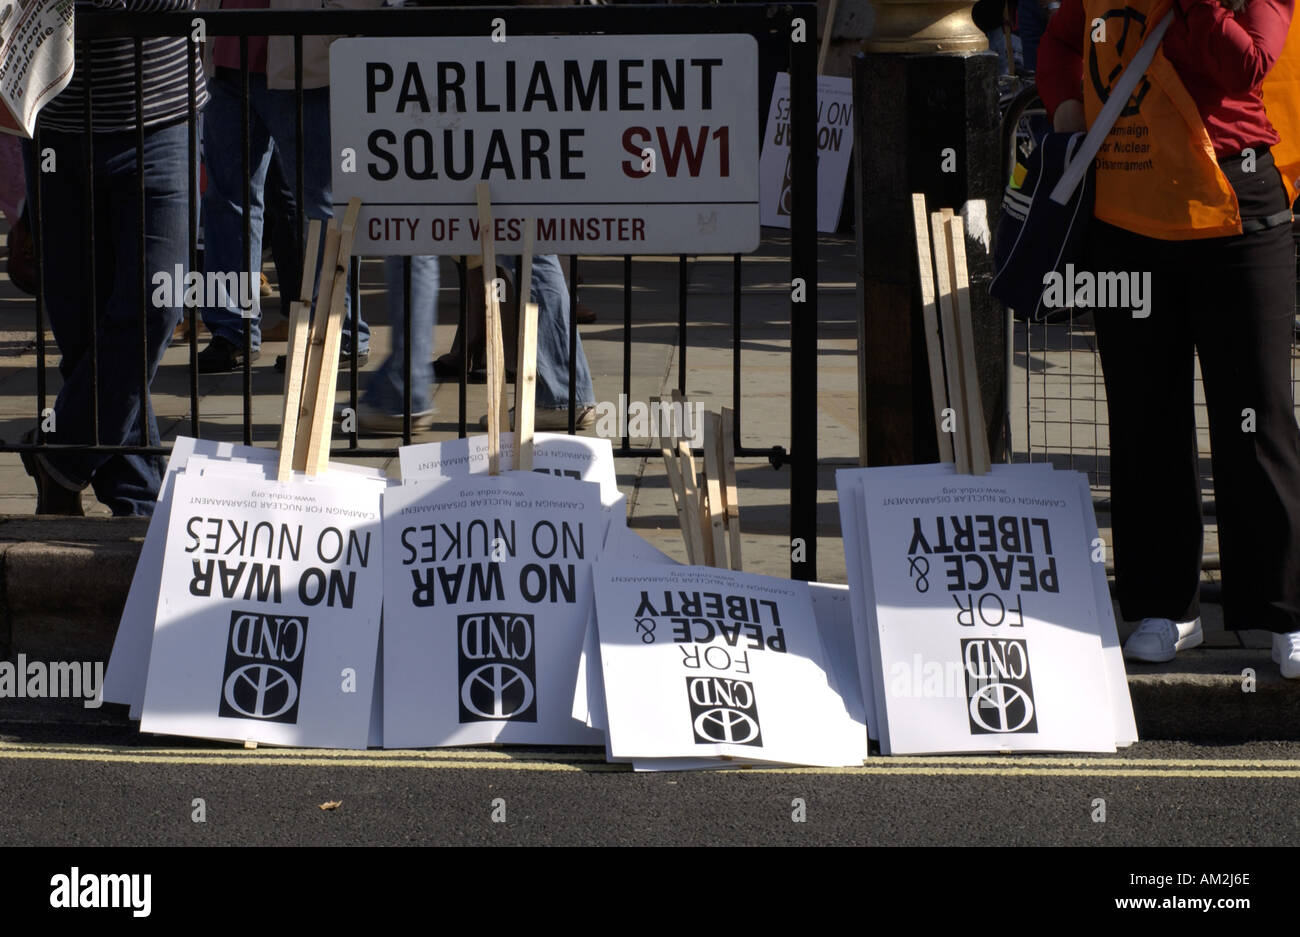 CND PLACARDS IN PARLIAMENT SQUARE LONDON John Robertson 24 09 2005 - Stock Image